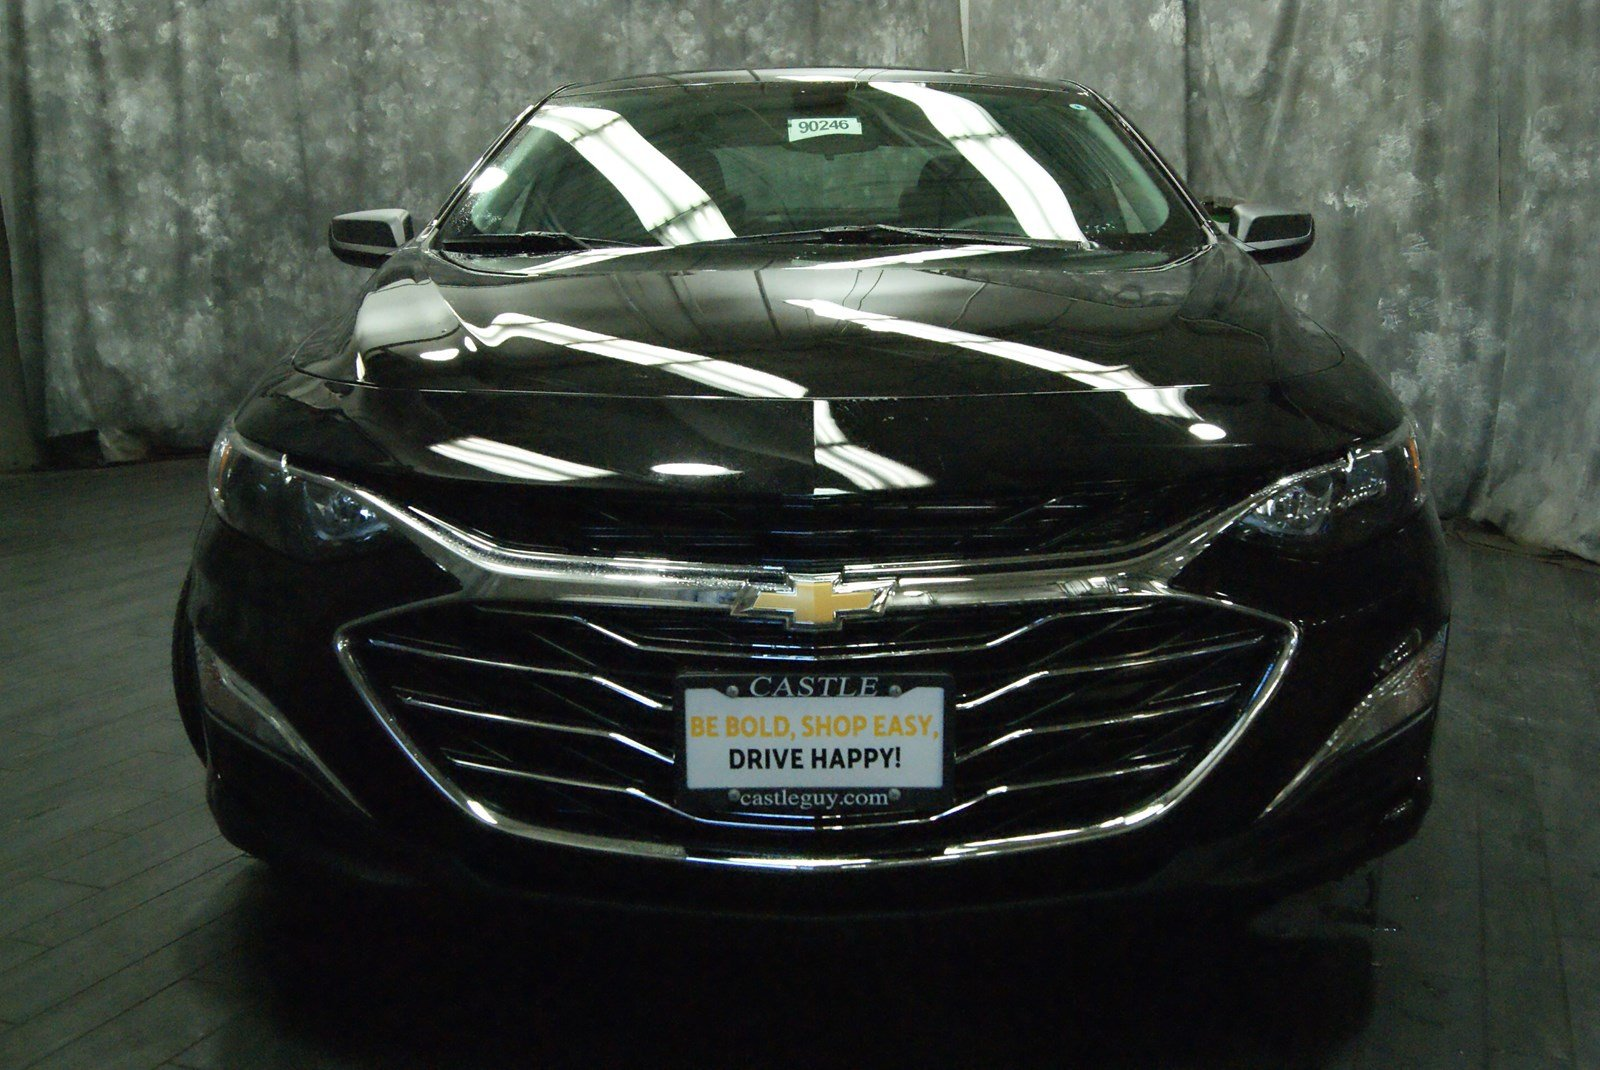 New 2019 Chevrolet Malibu Ls 4dr Car In Elk Grove Village 90246